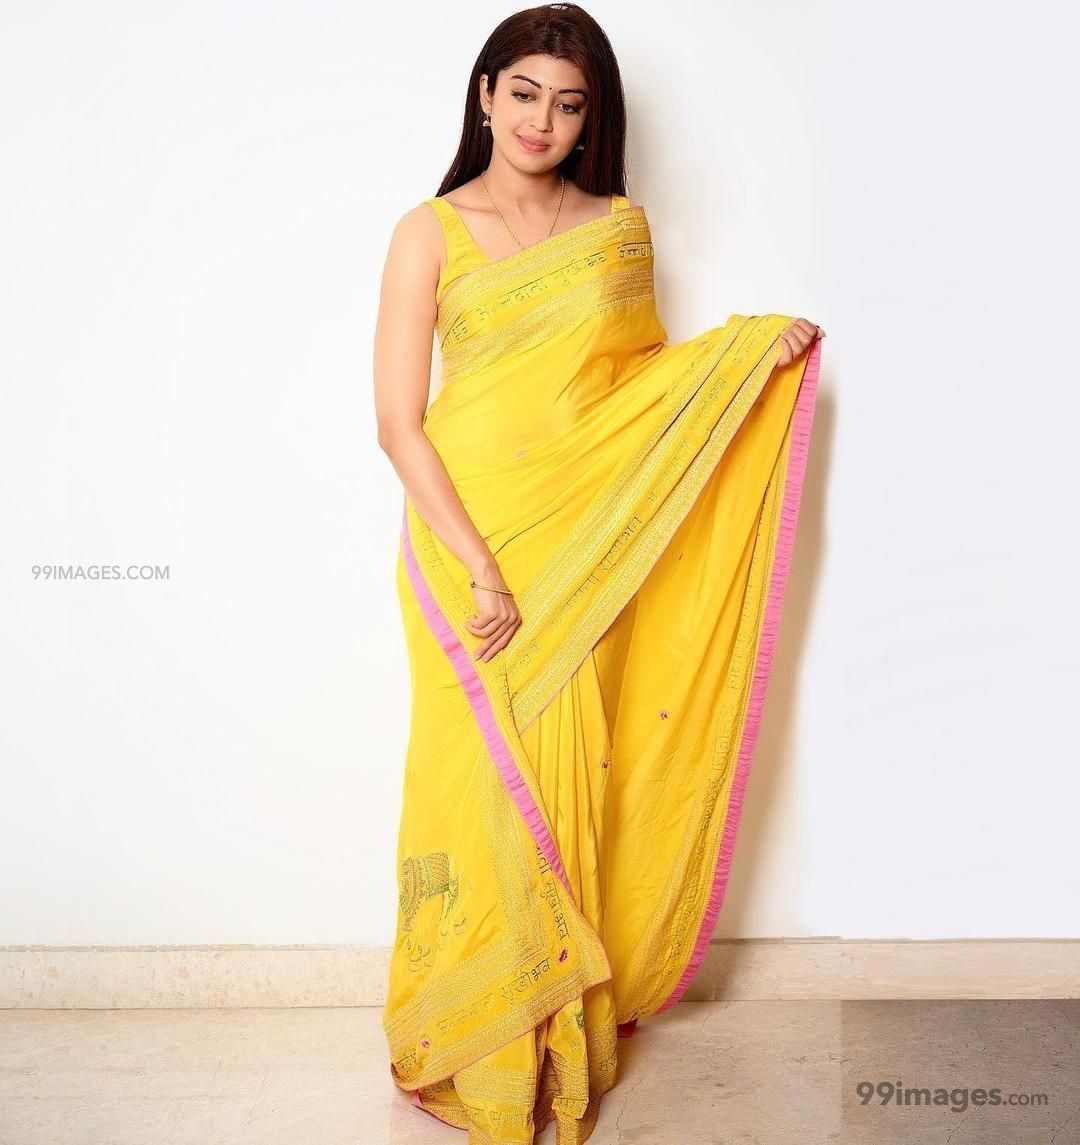 Pranitha Subhash Beautiful HD Photos & Mobile Wallpapers HD (Android/iPhone) (1080p) (848455) - Pranitha Subhash